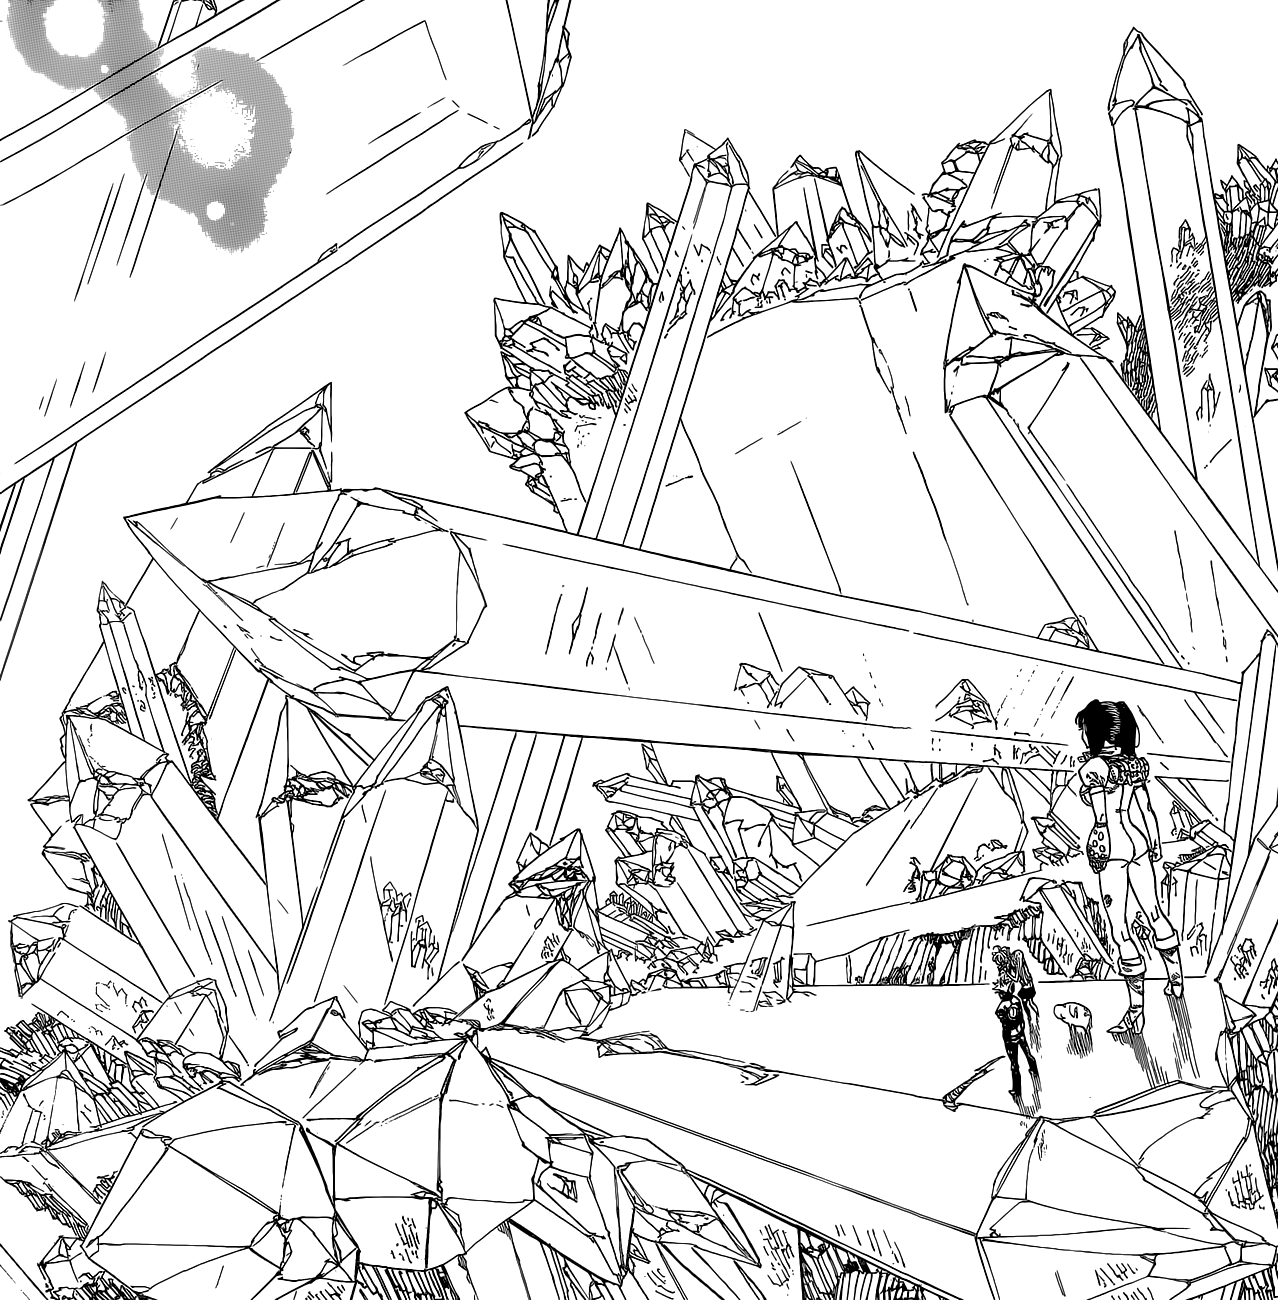 battle of jericho coloring page joshua fought the battle of jericho coloring pages page jericho coloring battle of